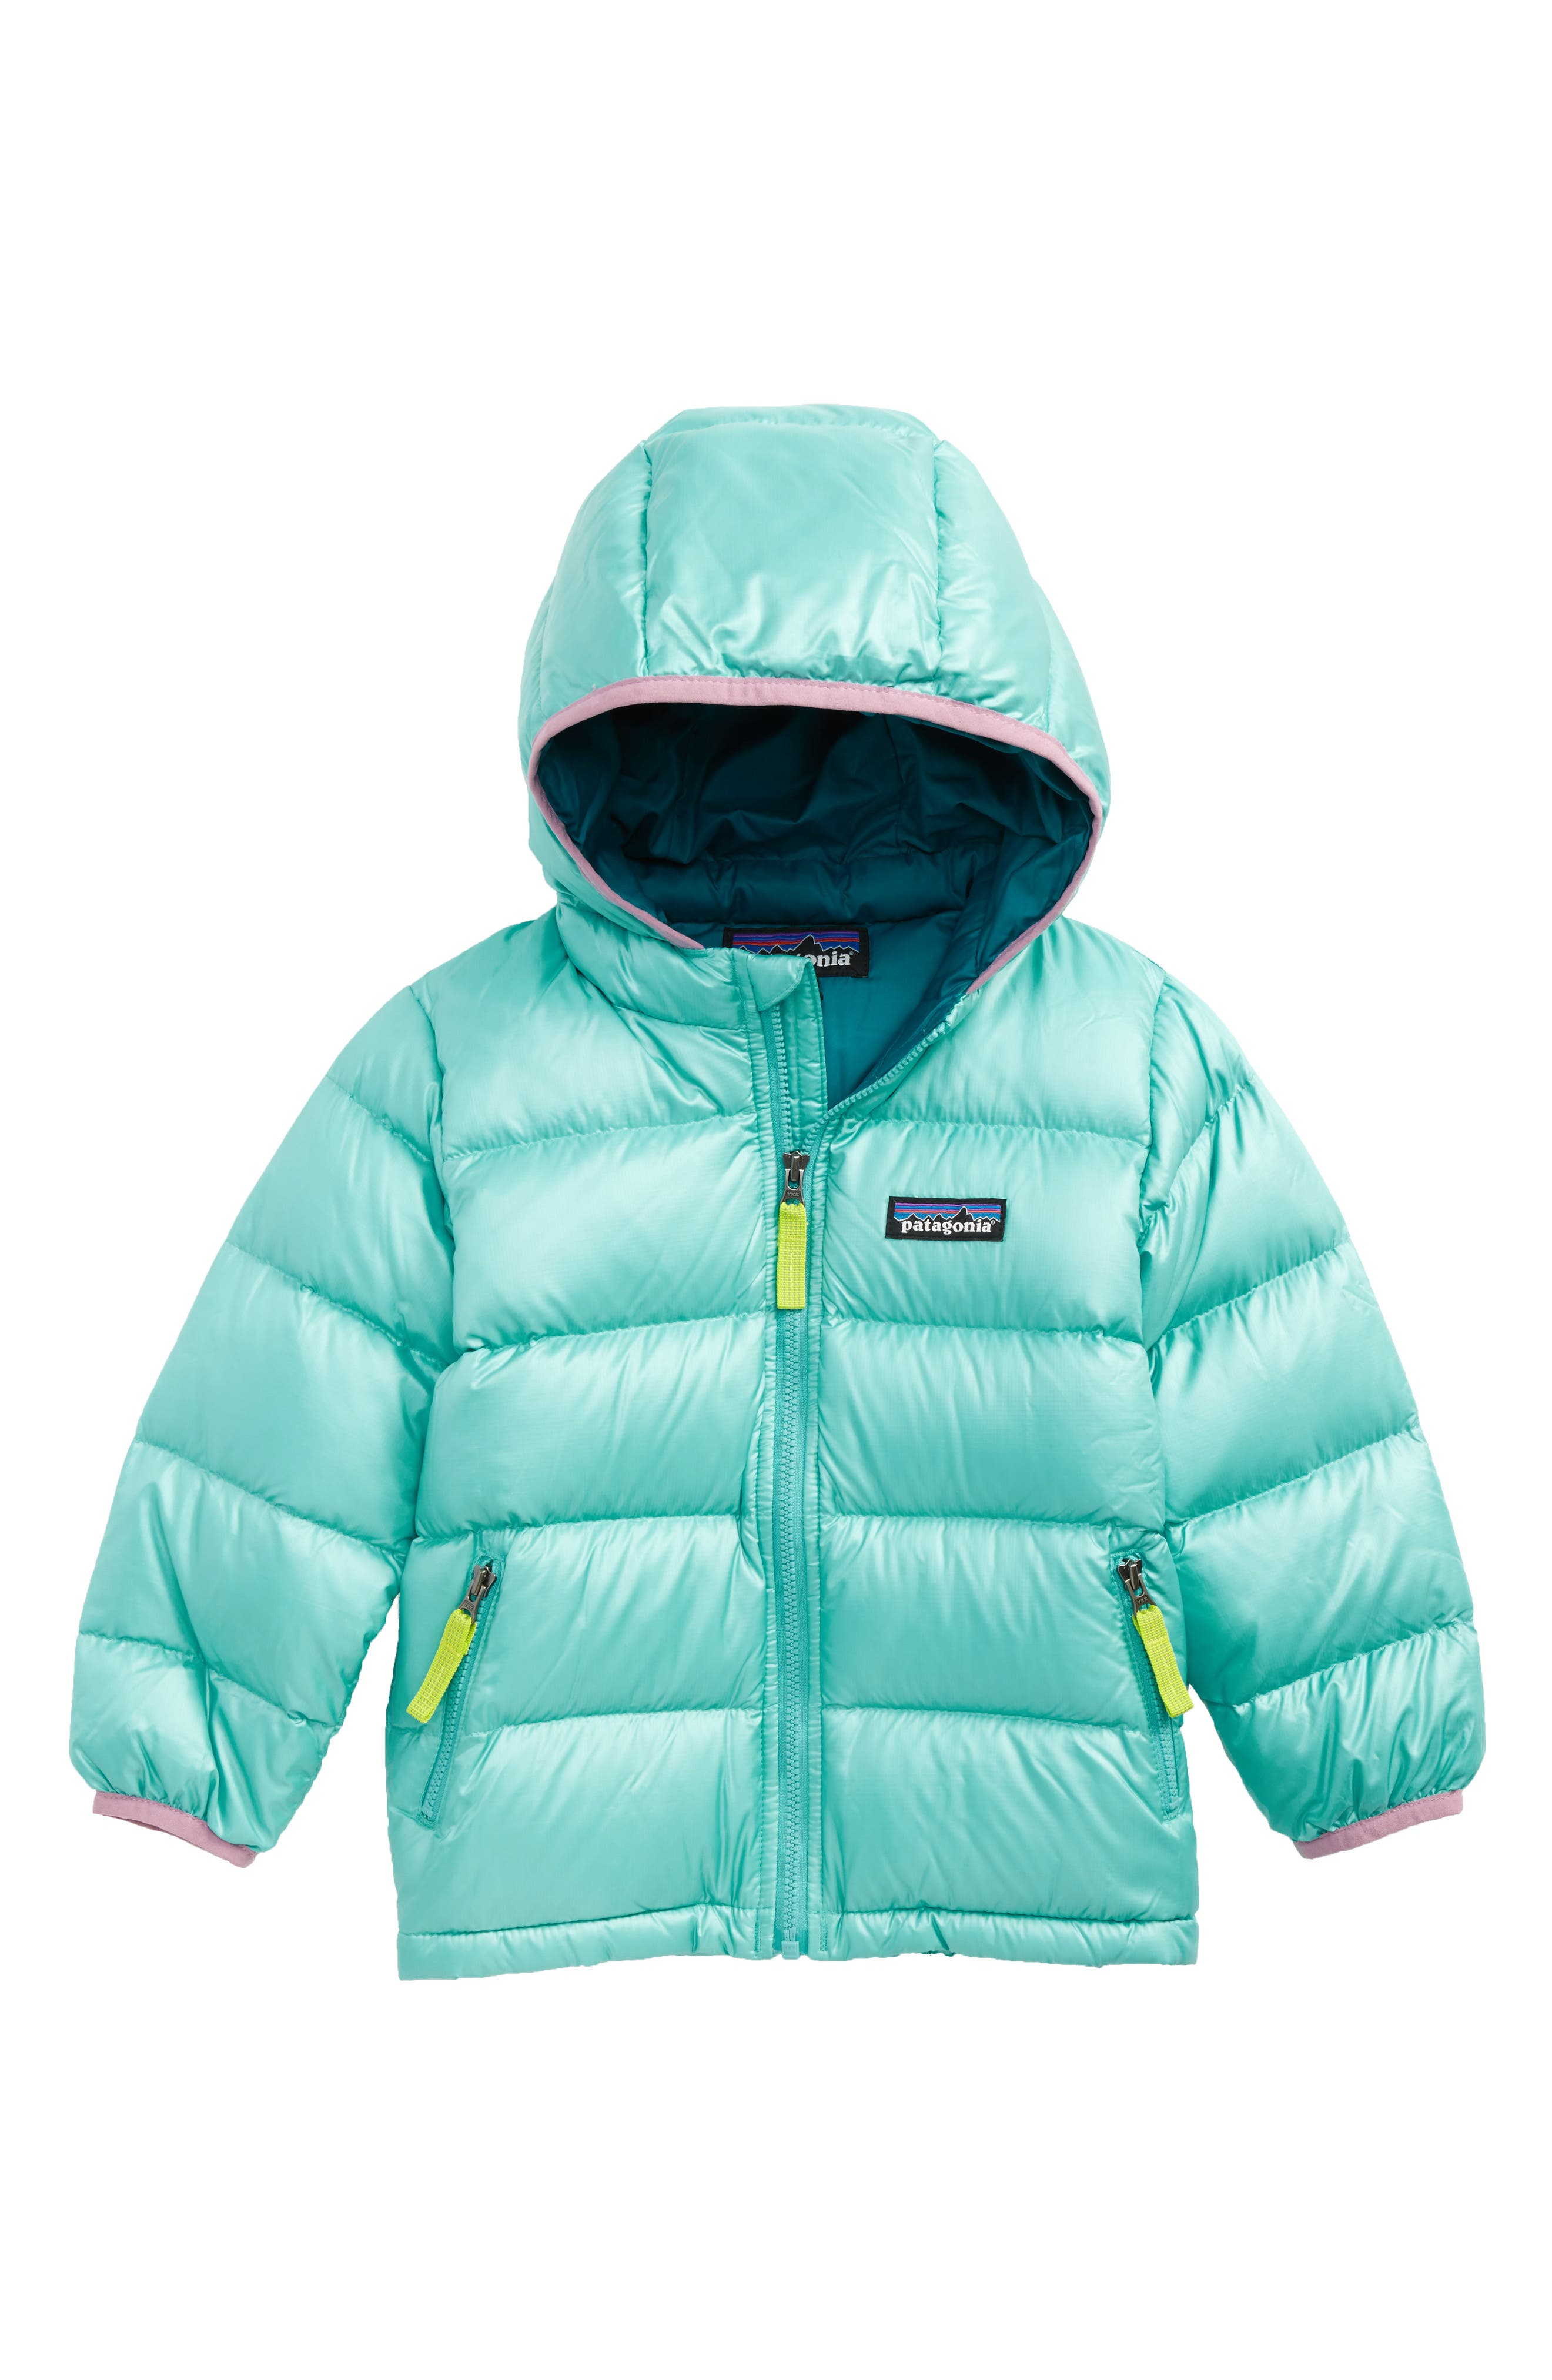 Patagonia Down Jacket (Toddler Girls)